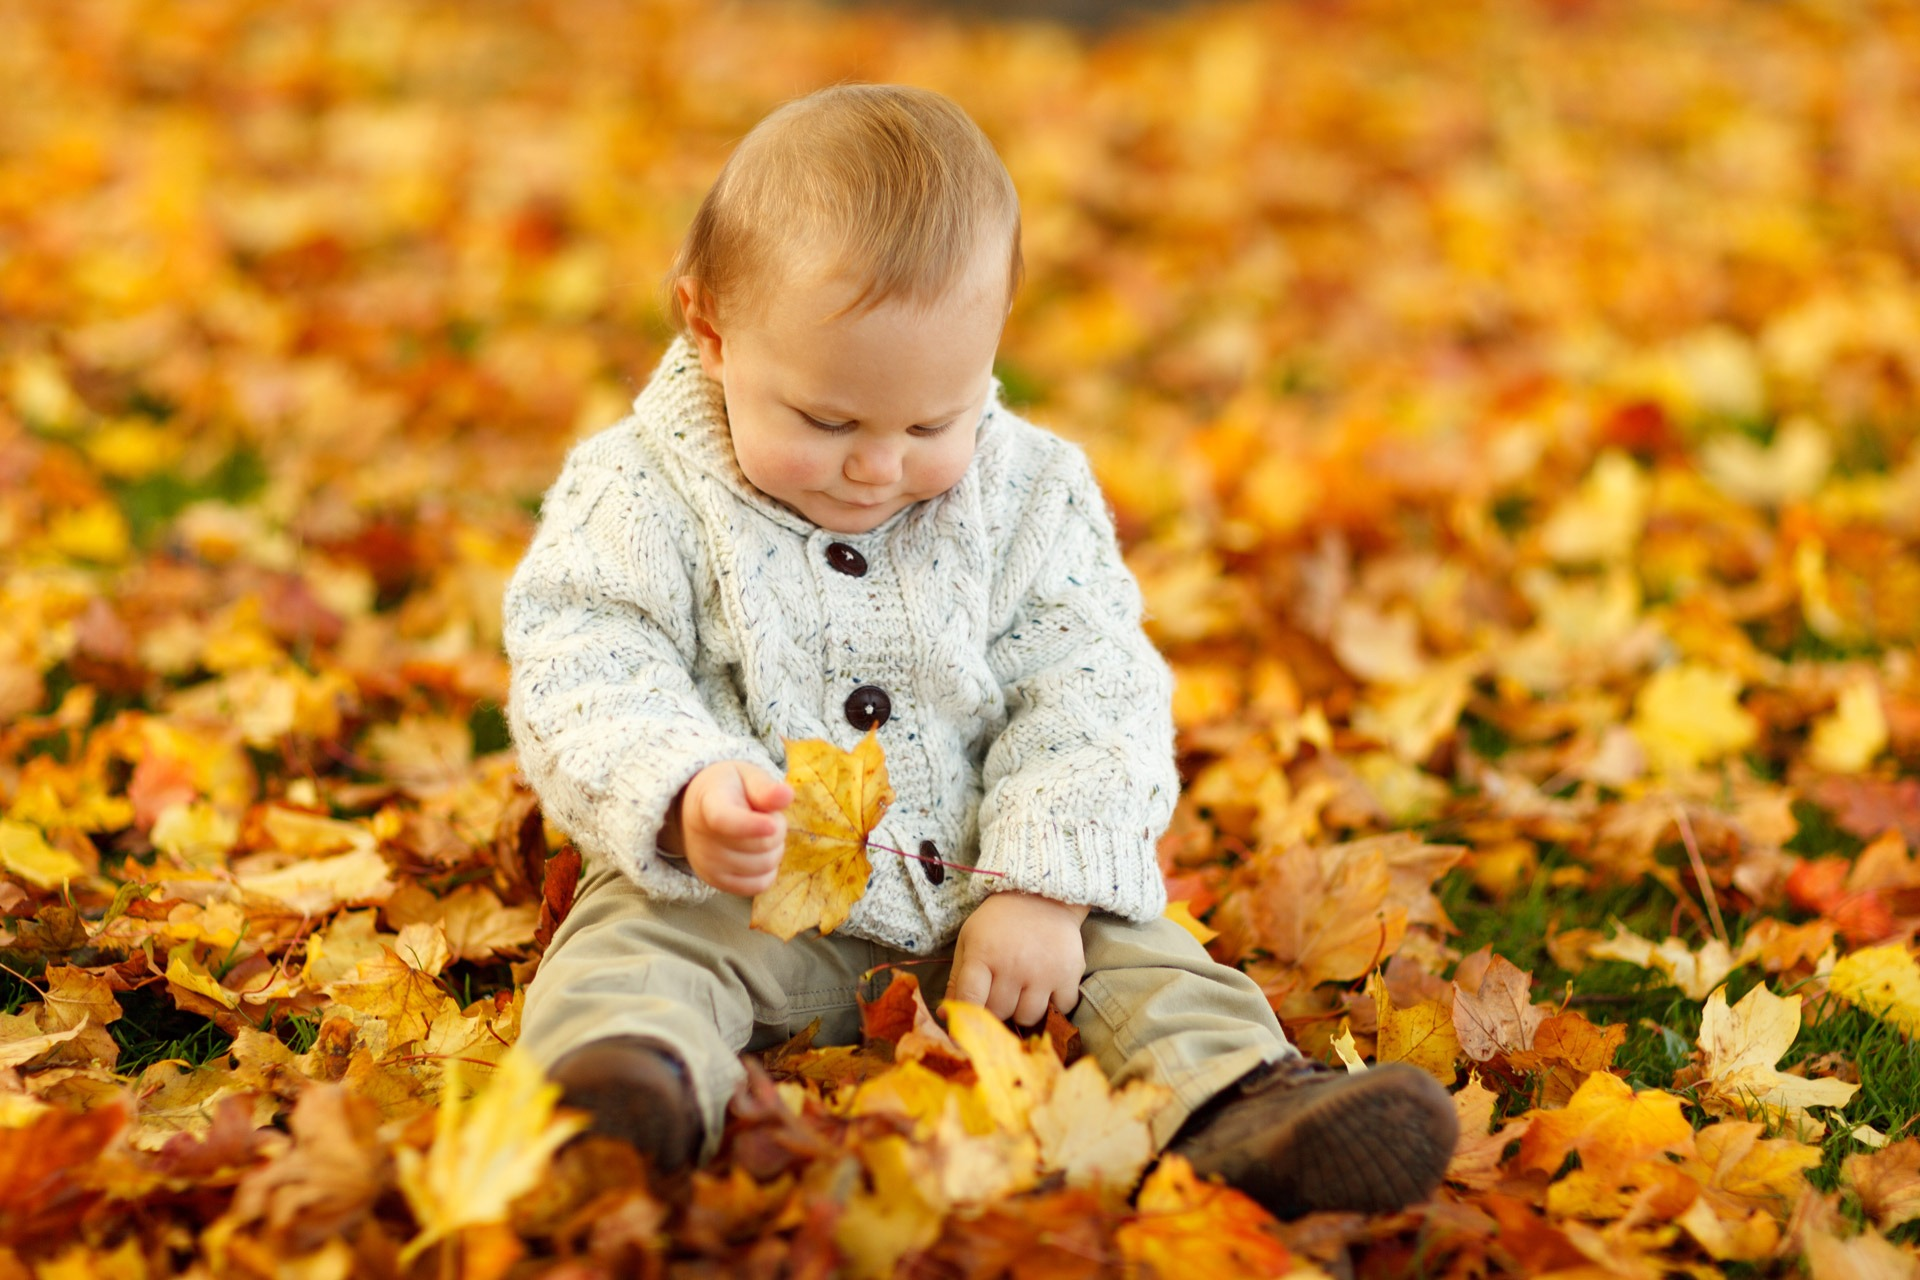 Child In Autumn, Adorable, Autumn, Child, Cute, HQ Photo